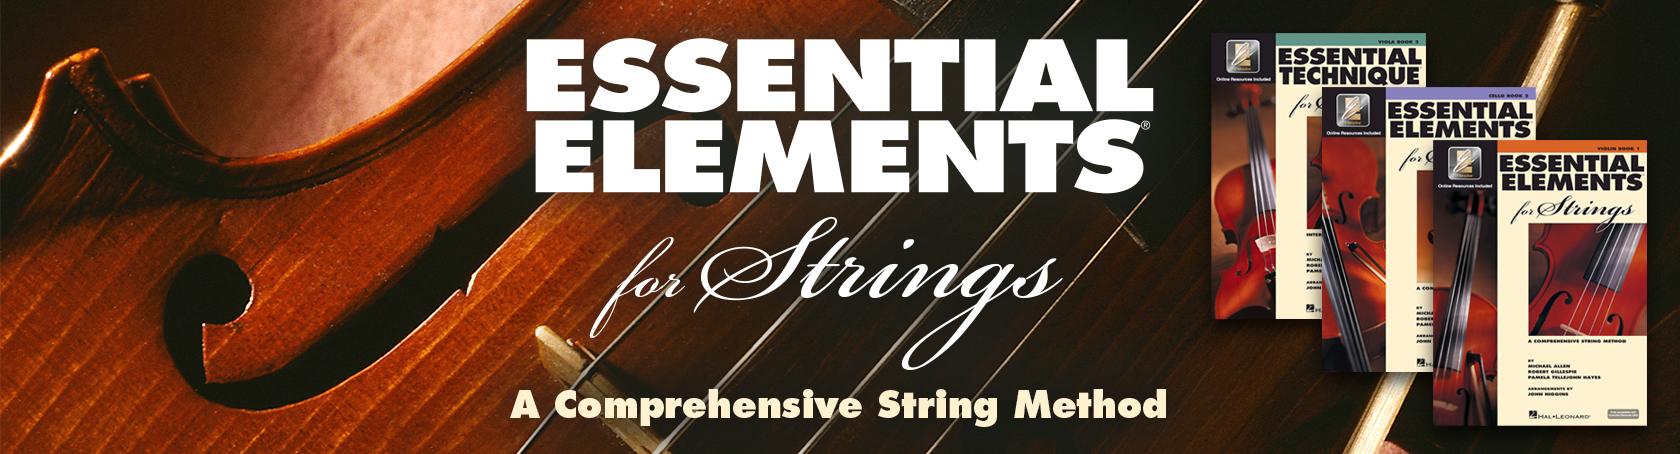 EE Strings - A Comprehensive String Method